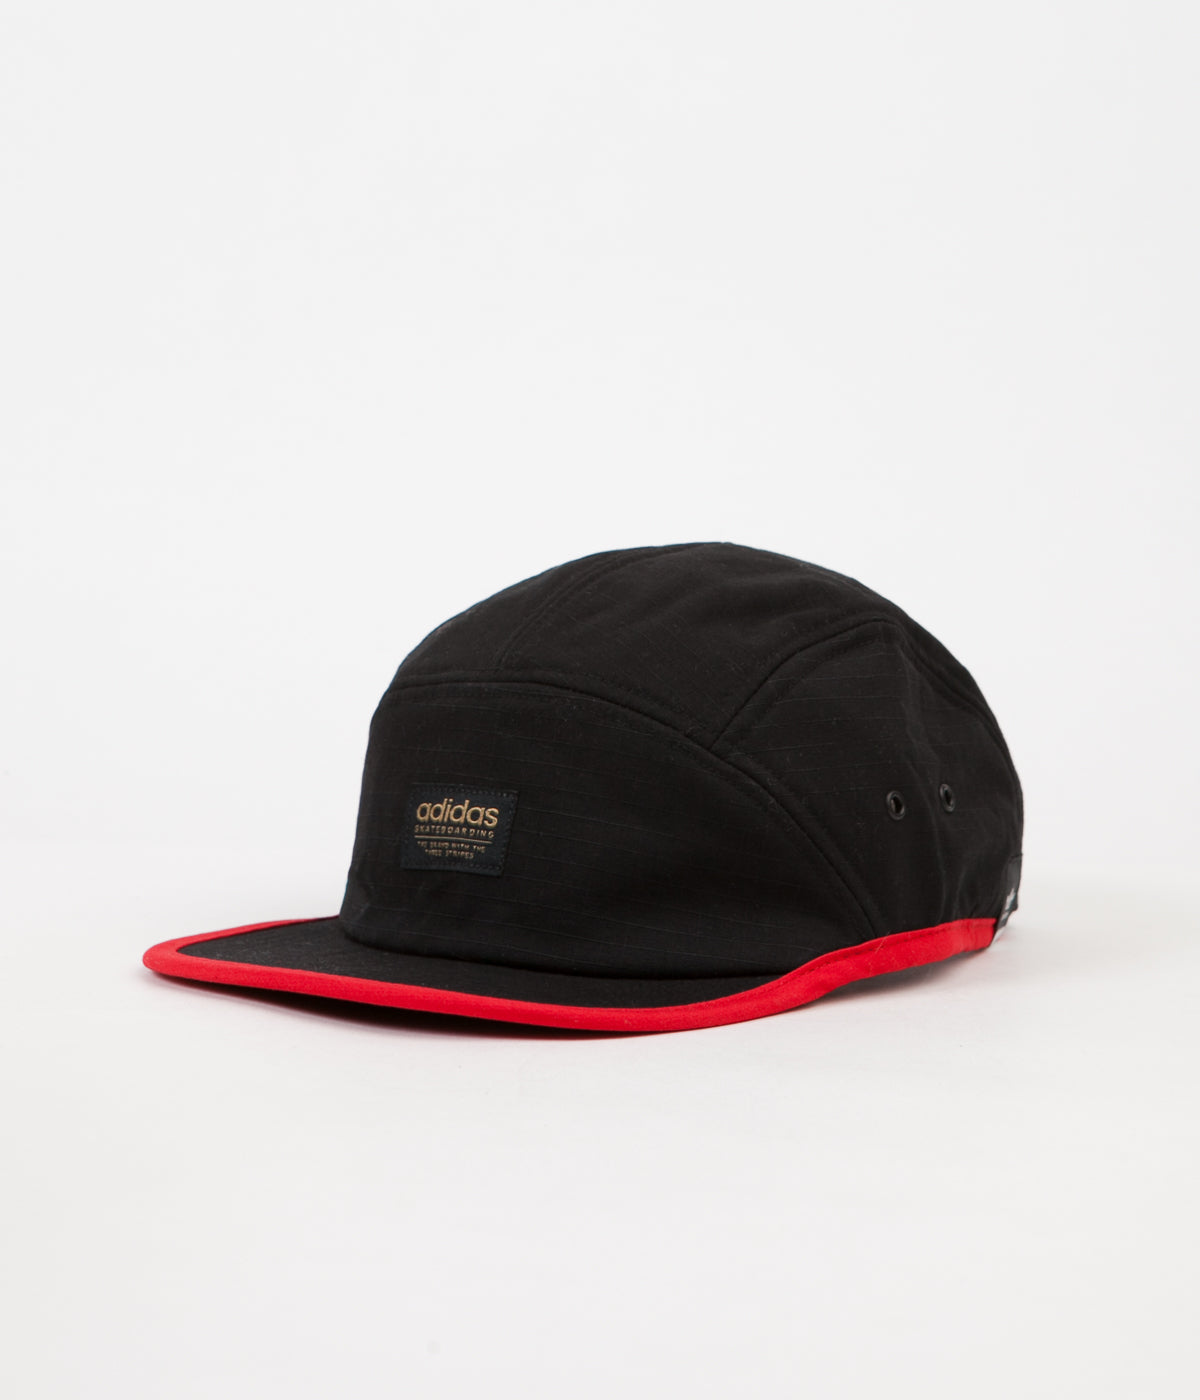 Adidas Polar 5 Panel Cap - Black